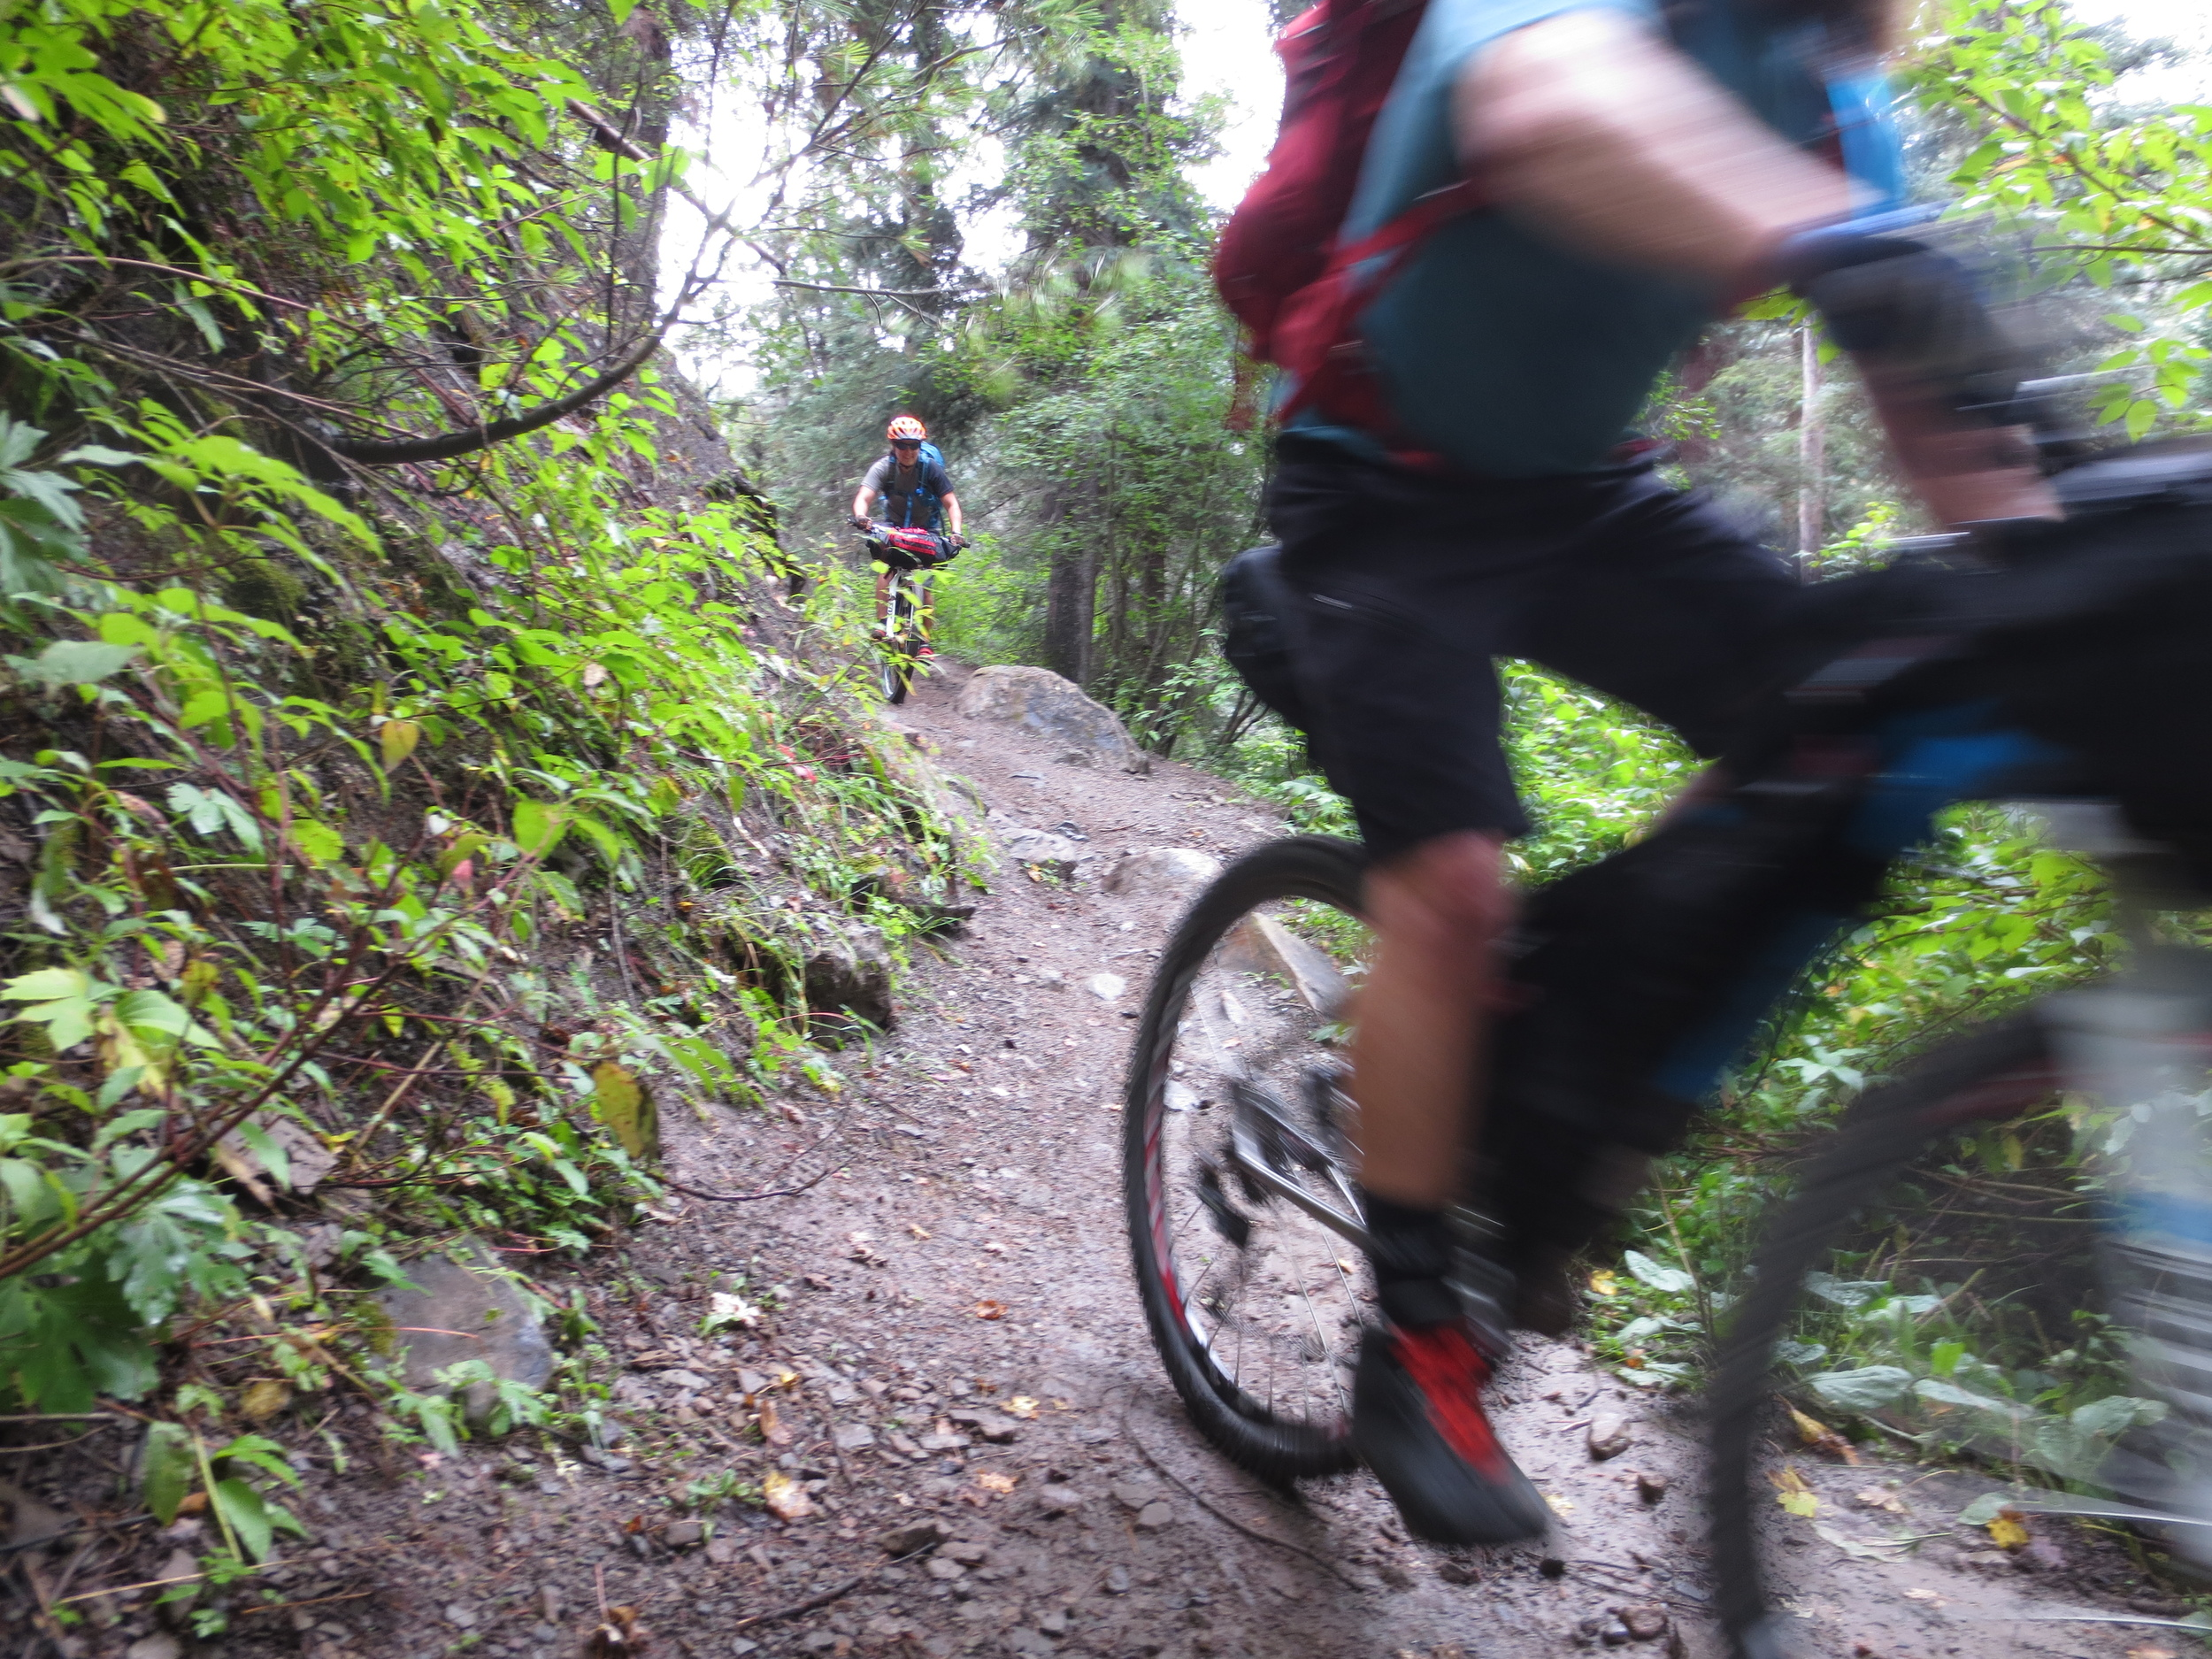 The trail was damp and slippery, and all the leaves overhanging the trail left water on us as we passed by. I love riding Hermosa in these conditions - lots of fun, and no dust. Here, Ashley and Brian speed by.